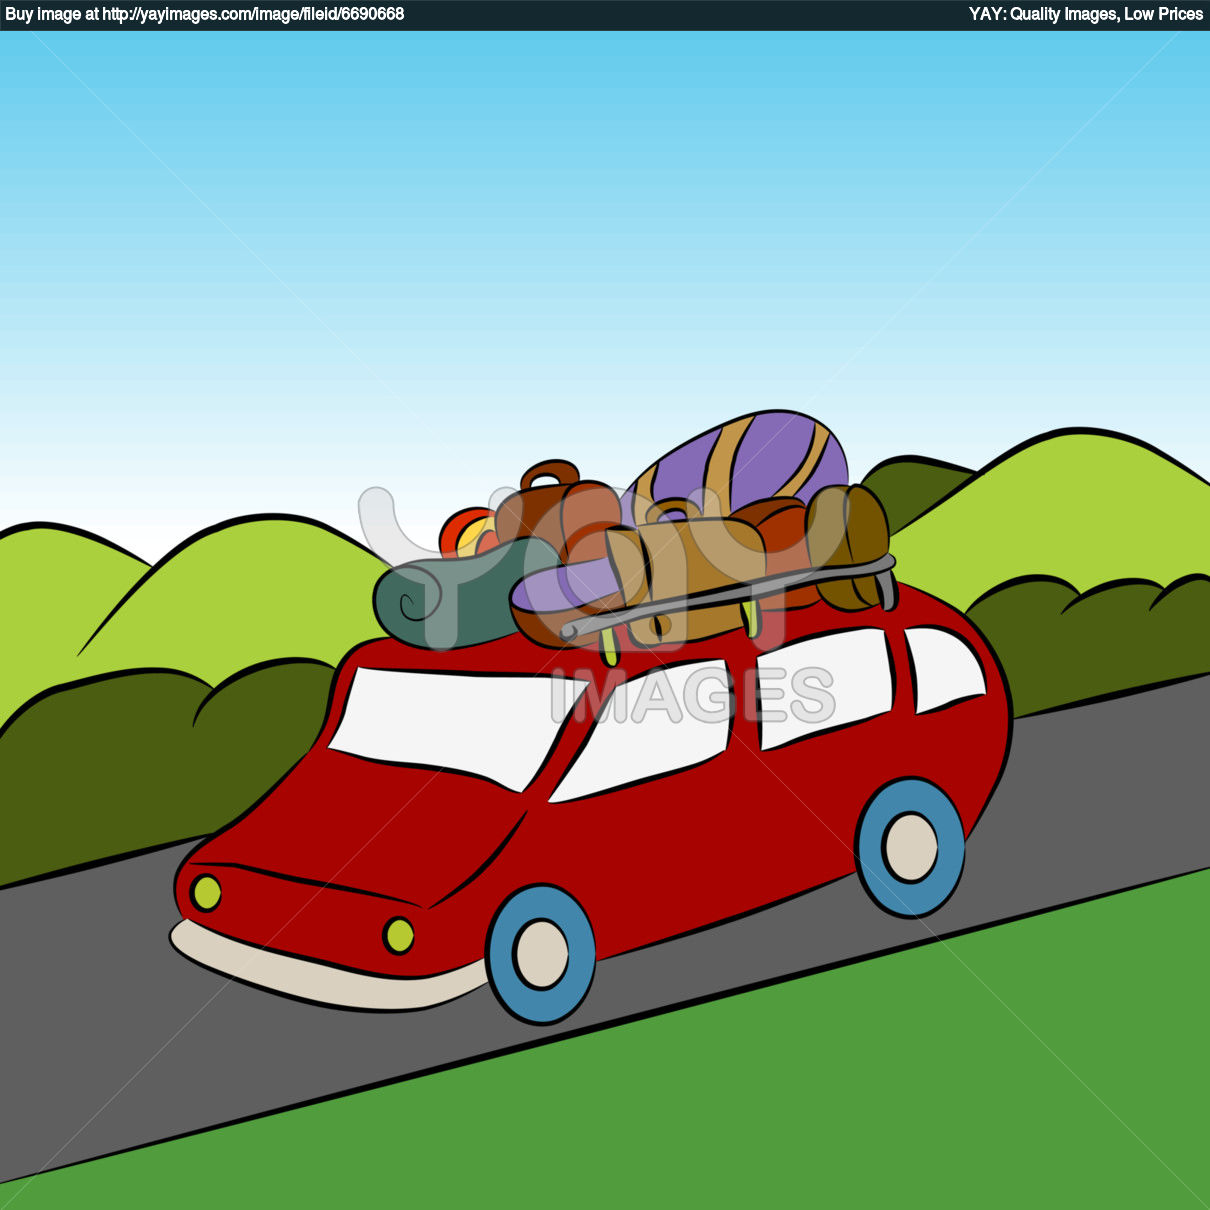 Vacation clipart yay Images family%20car%20trip Clipart Trip Free